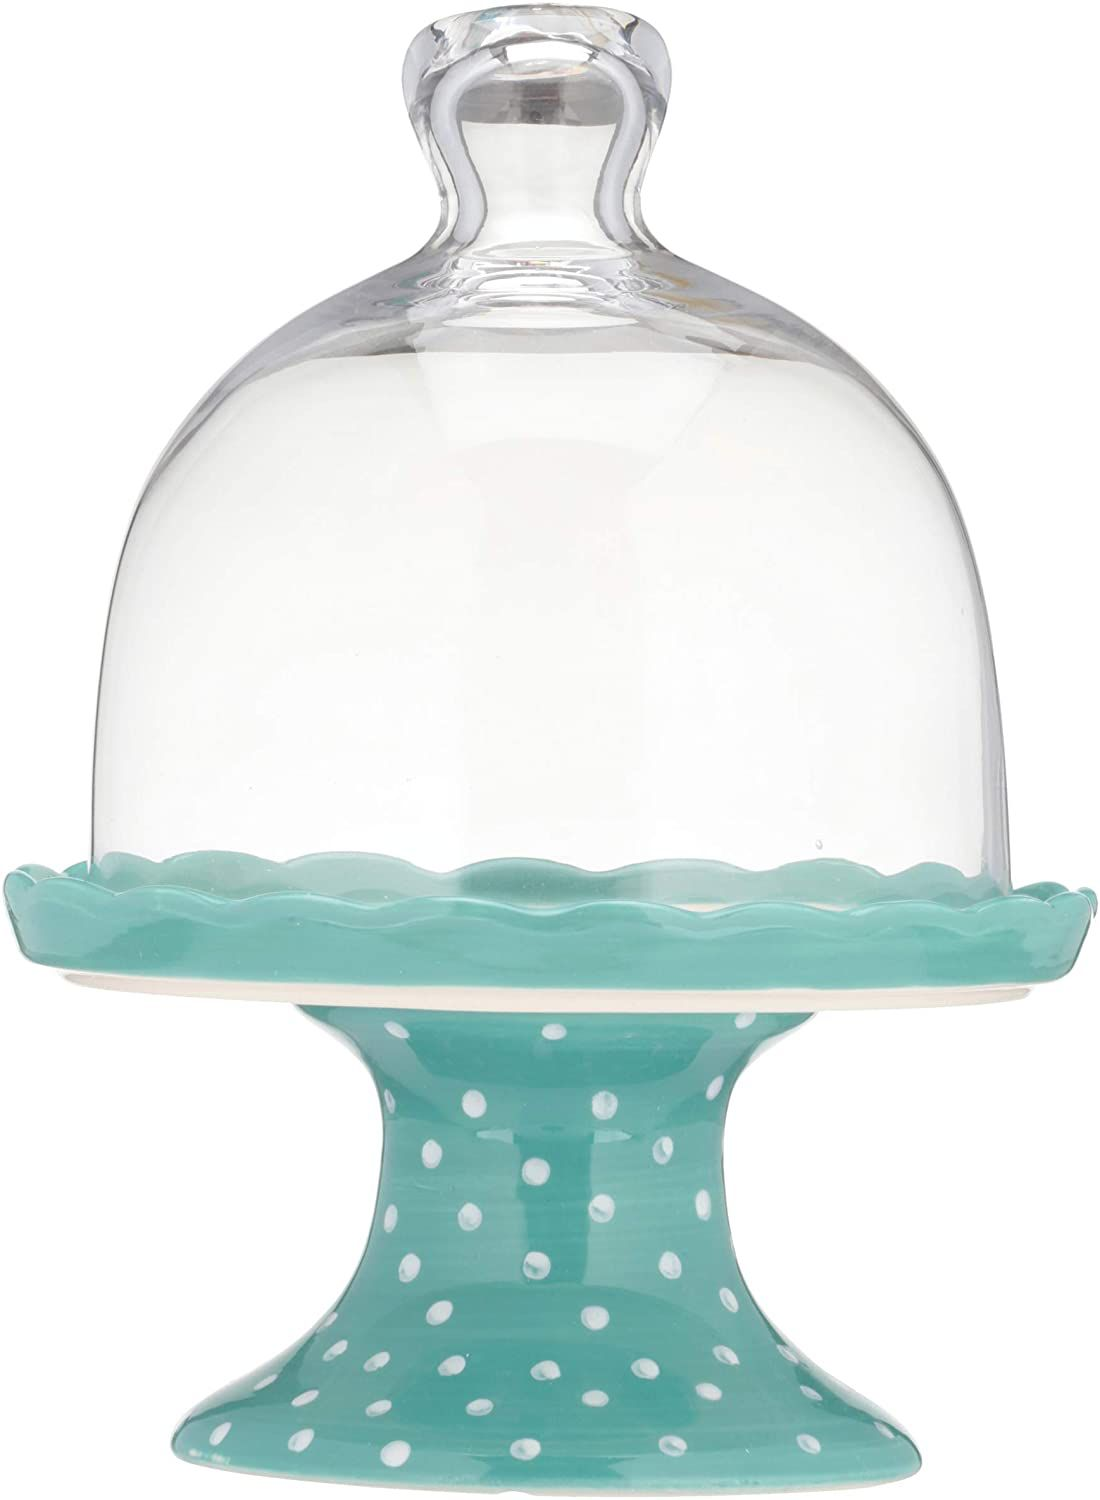 The Pioneer Woman Flea Market Floral Polka Dot Mini Cupcake Stand with Lid